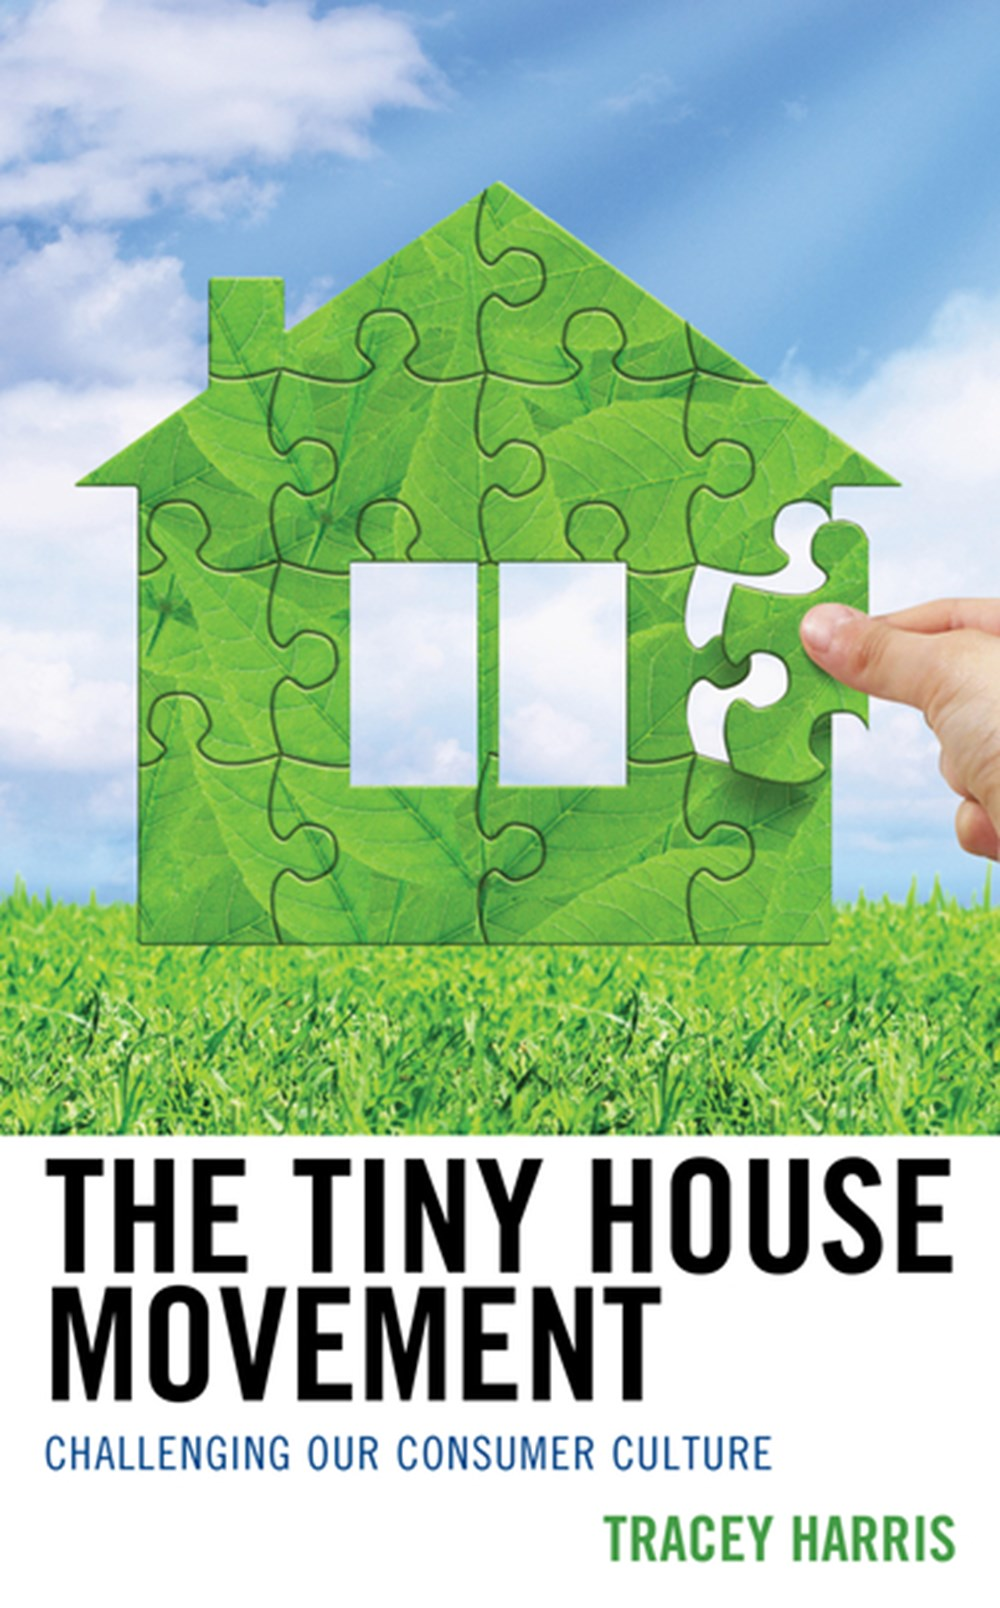 Tiny House Movement Challenging Our Consumer Culture